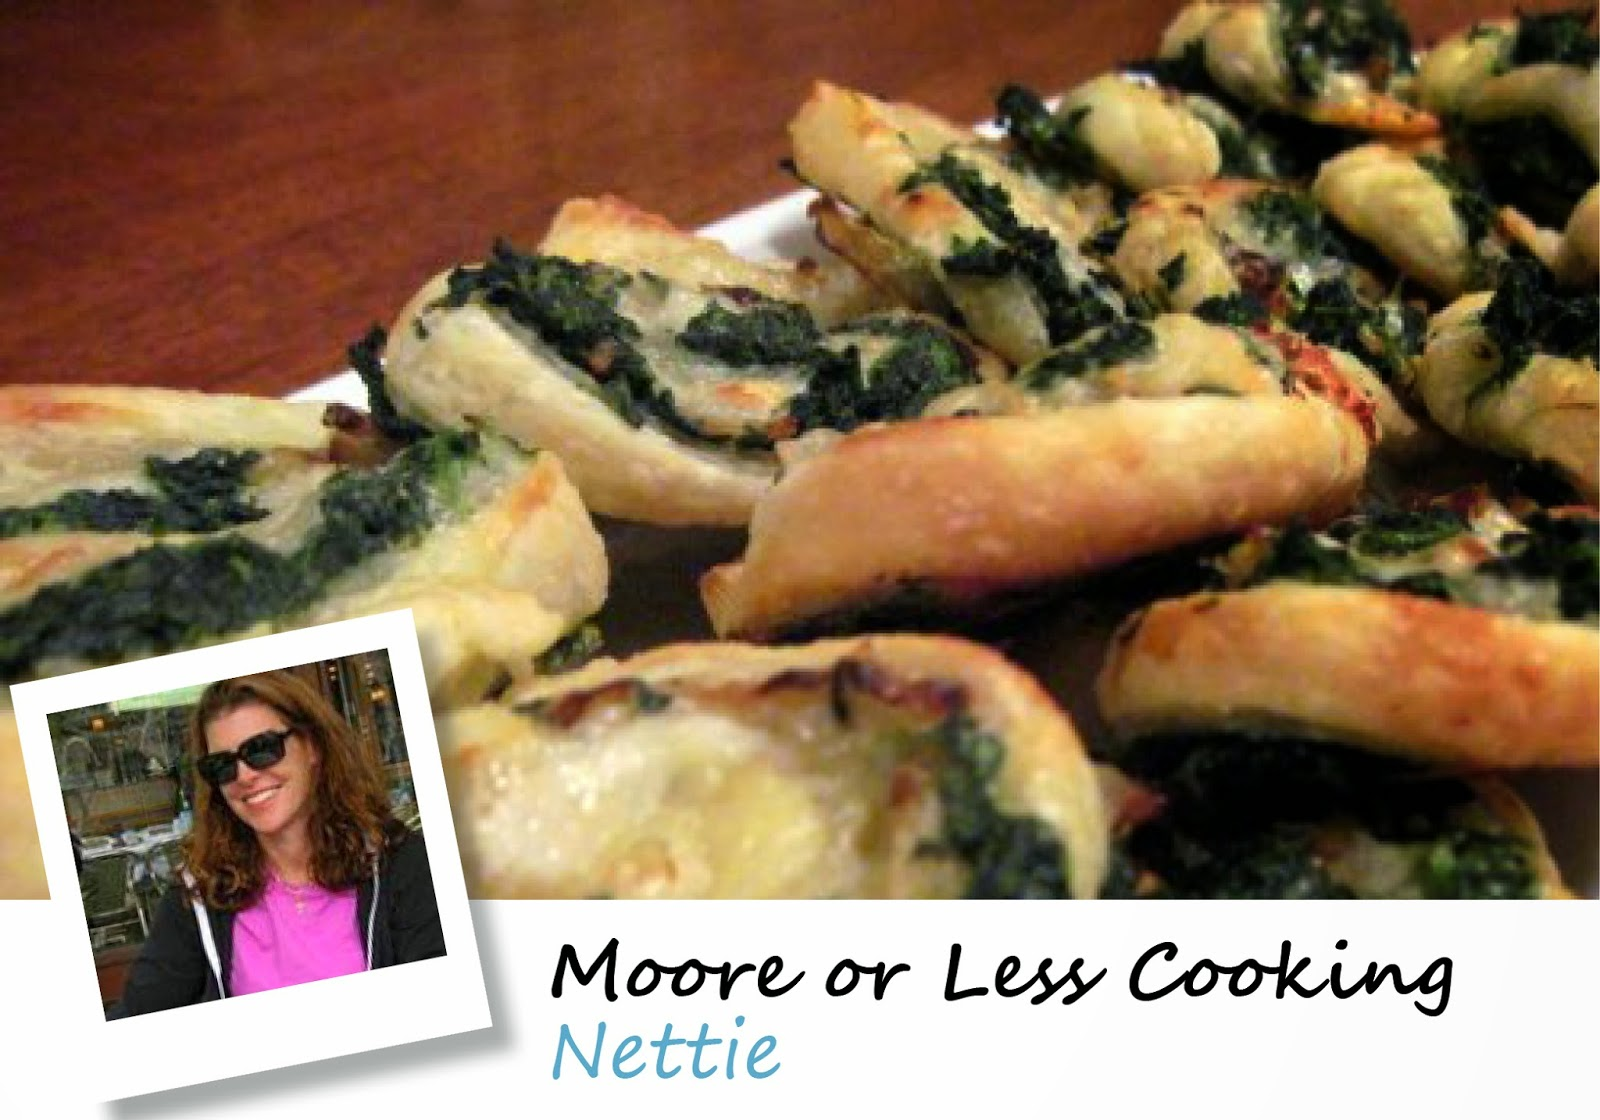 Nettie - Moore or Less Cooking